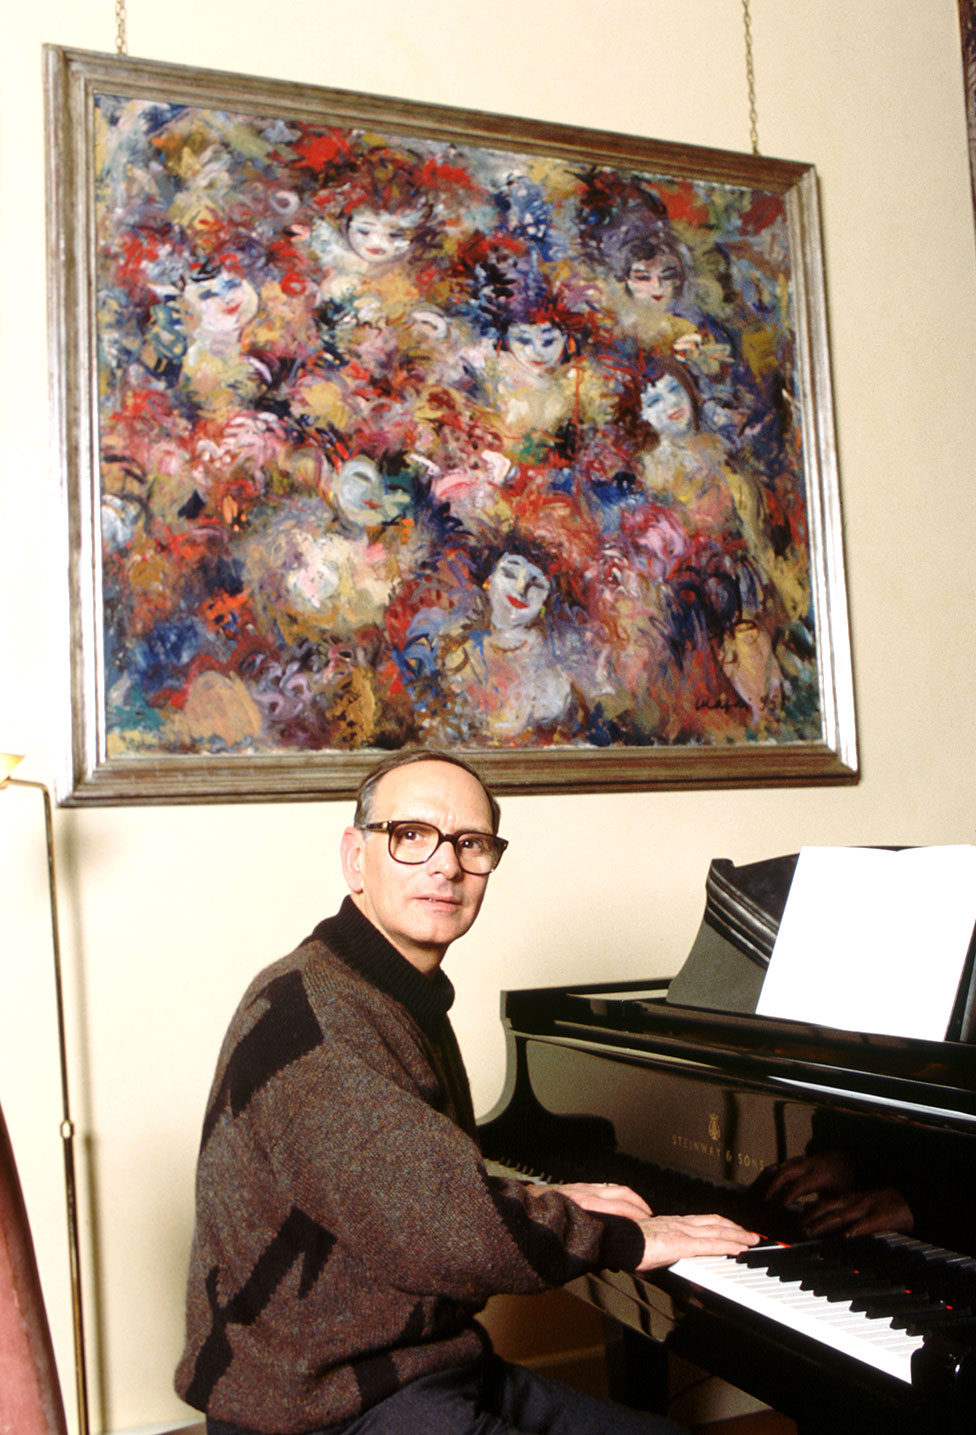 Ennio Morricone sitting at a piano with a large painting on the wall